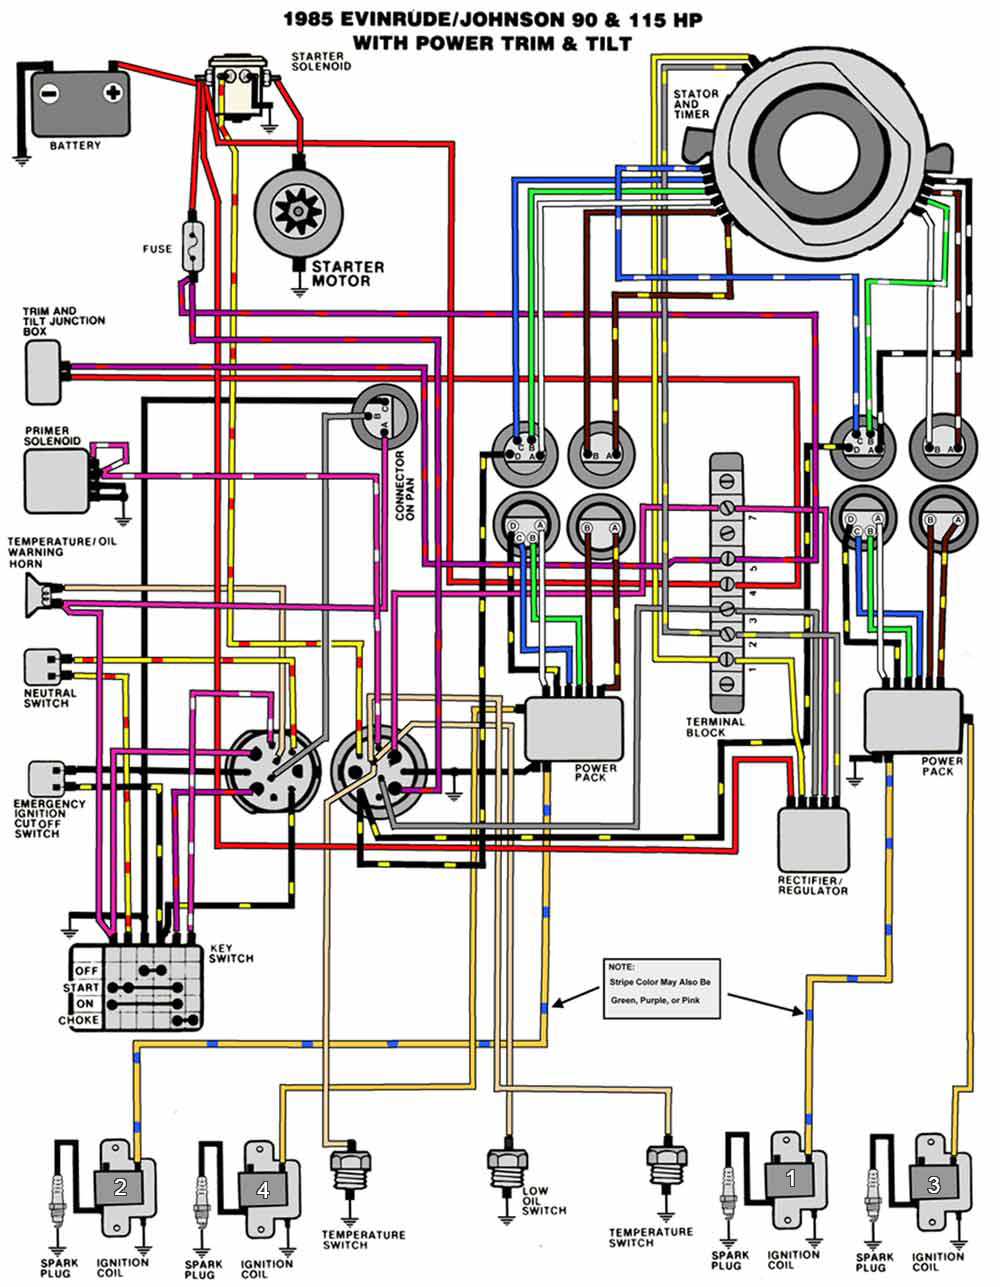 1985_90_115TnT mastertech marine evinrude johnson outboard wiring diagrams 1979 Mercury 115 Wiring Harness Diagram at alyssarenee.co